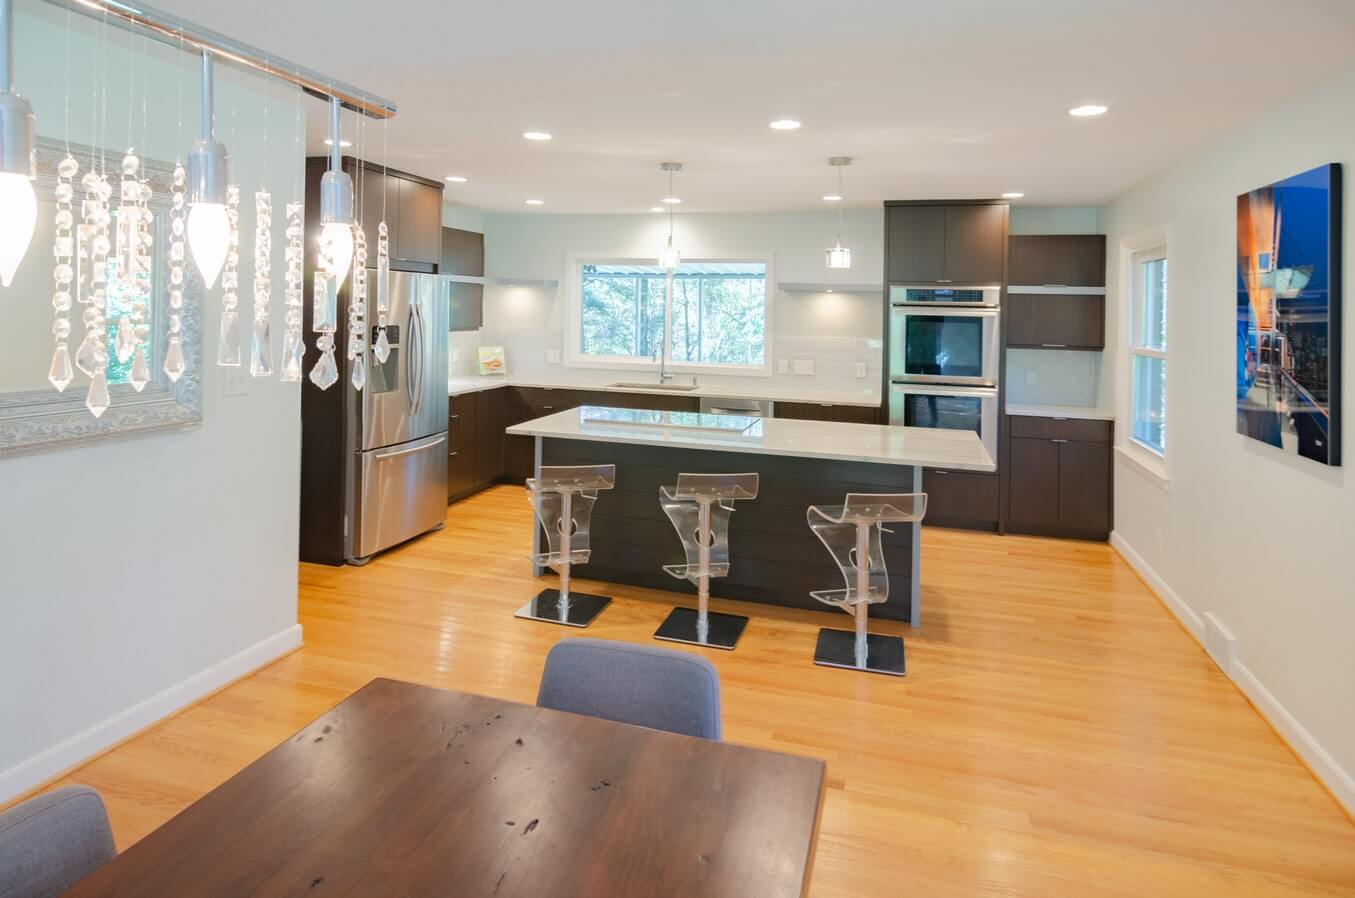 5 Creative Ideas for Kitchen Islands